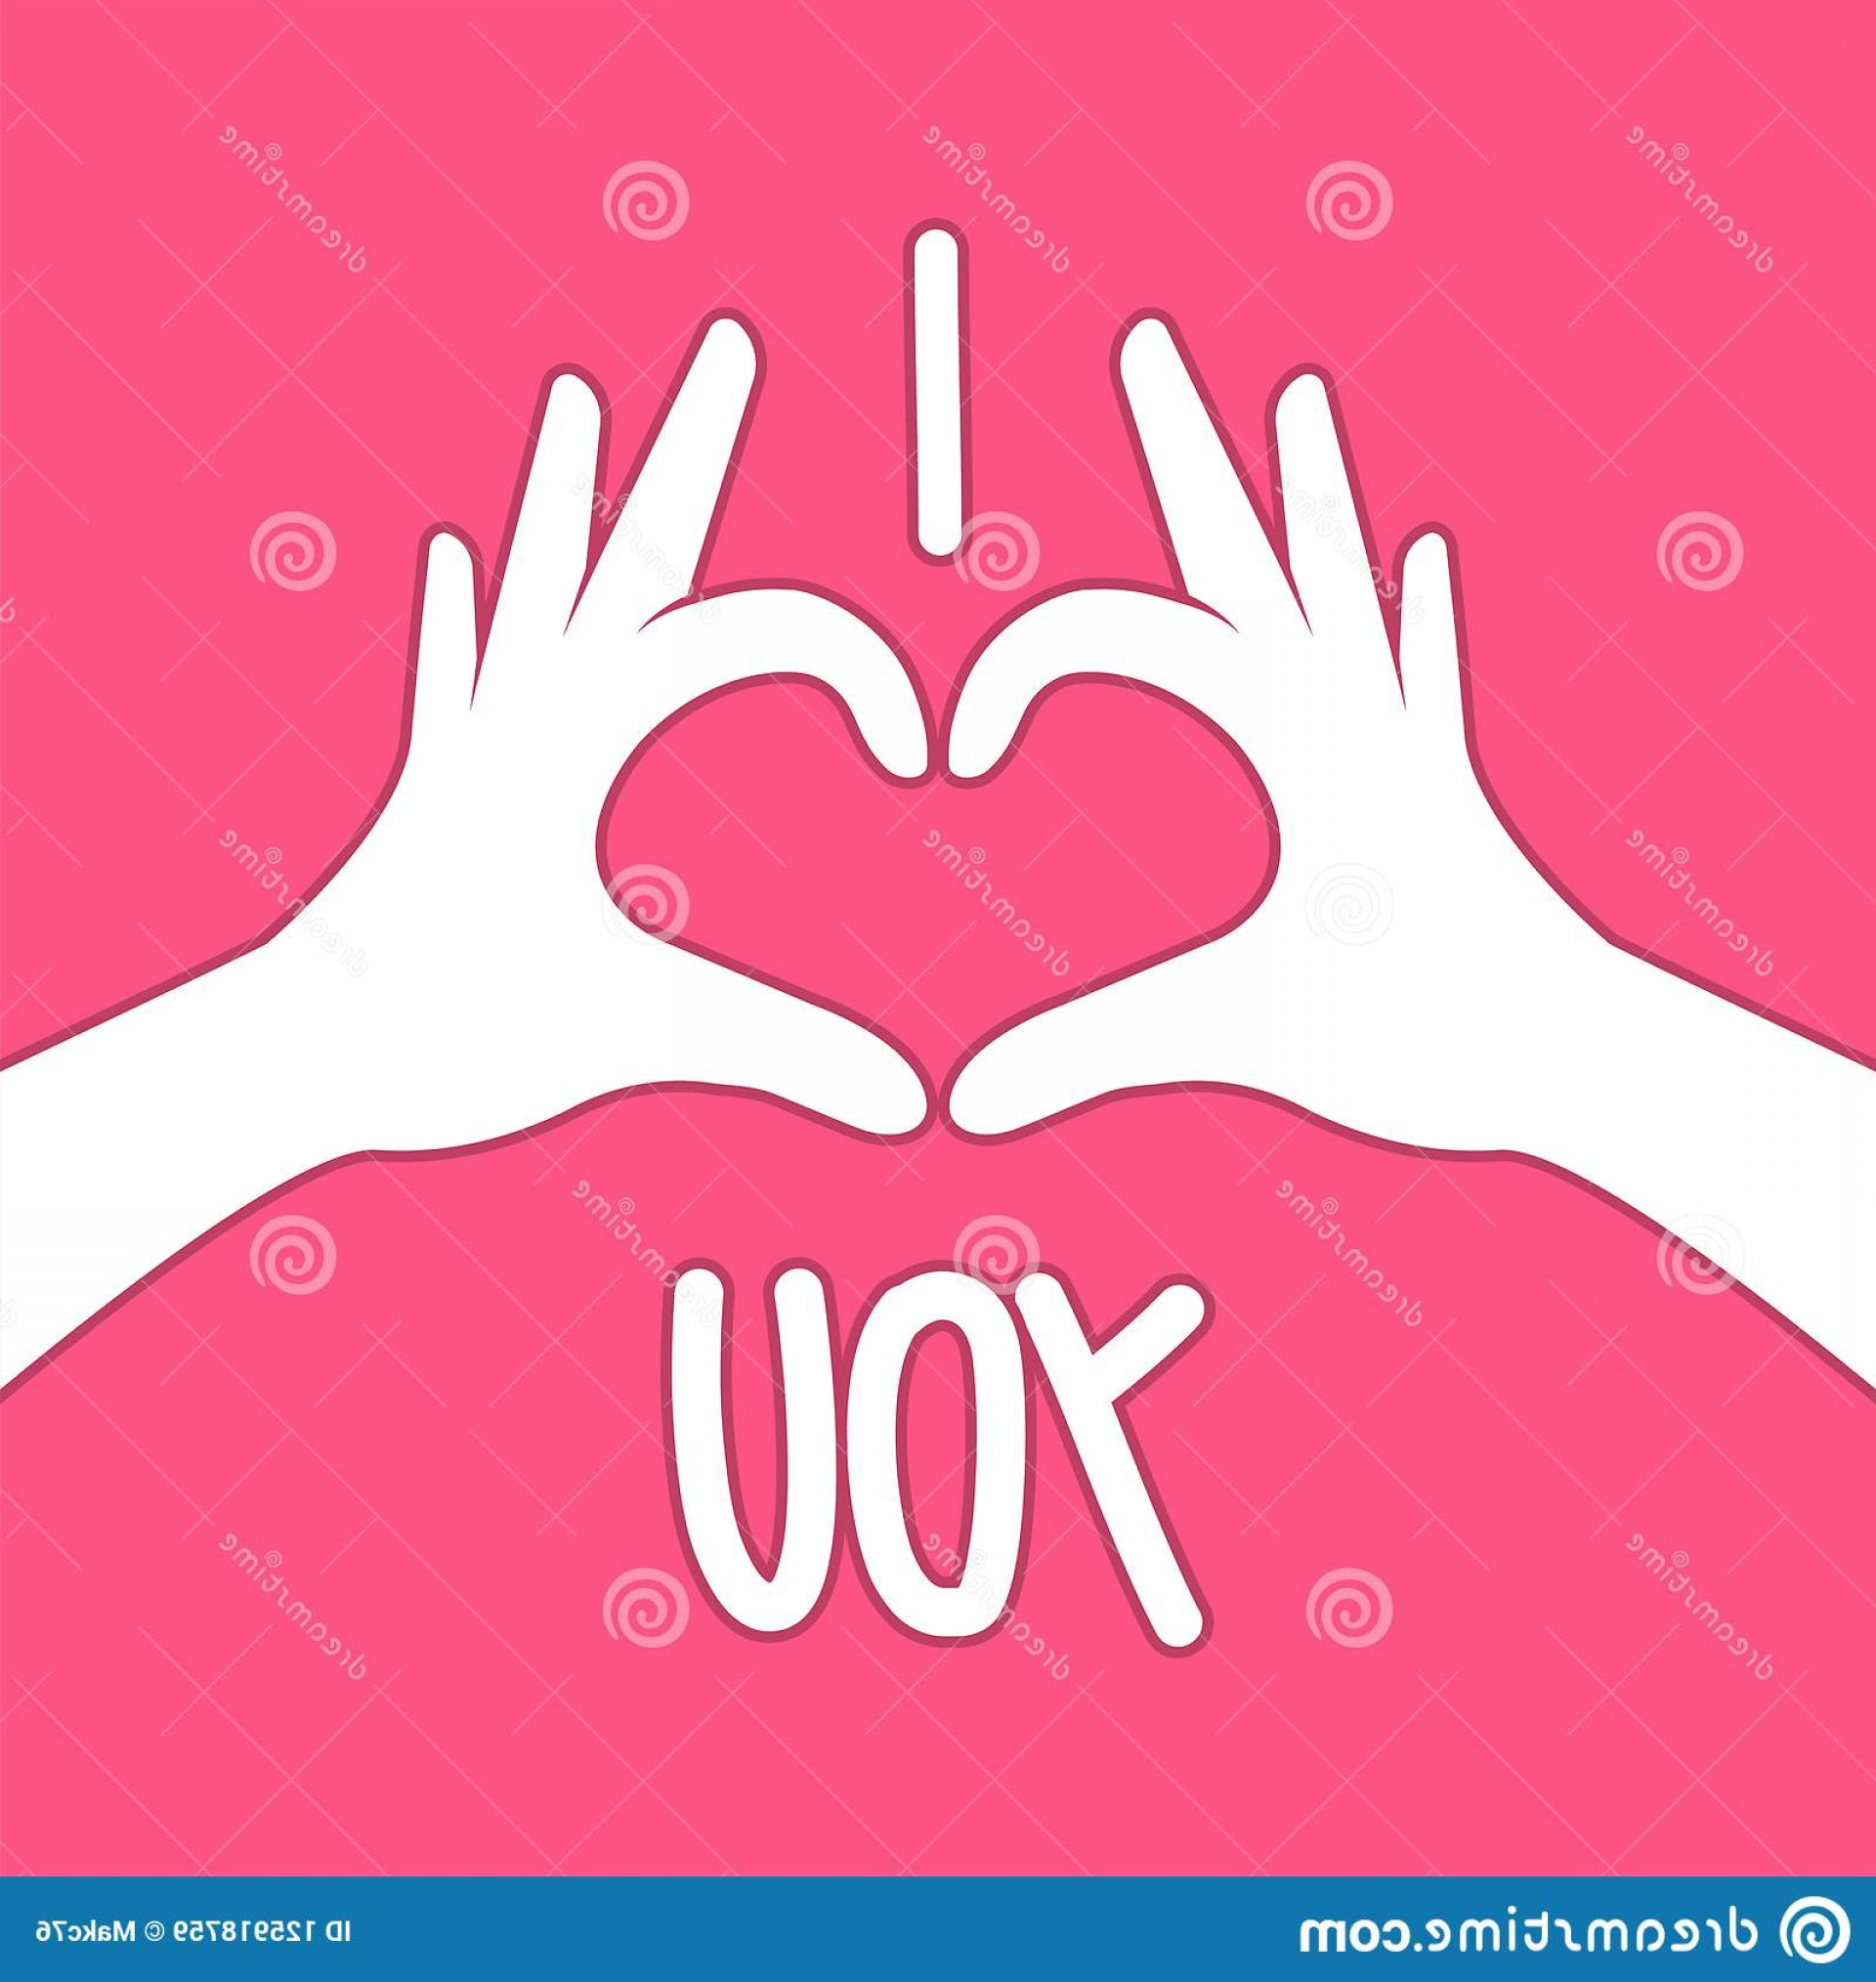 Vector Vector Heart Shaped Hands: Hands Making Heart Shape Hands Making Heart Shape Valentines Day Vector Illustration Image